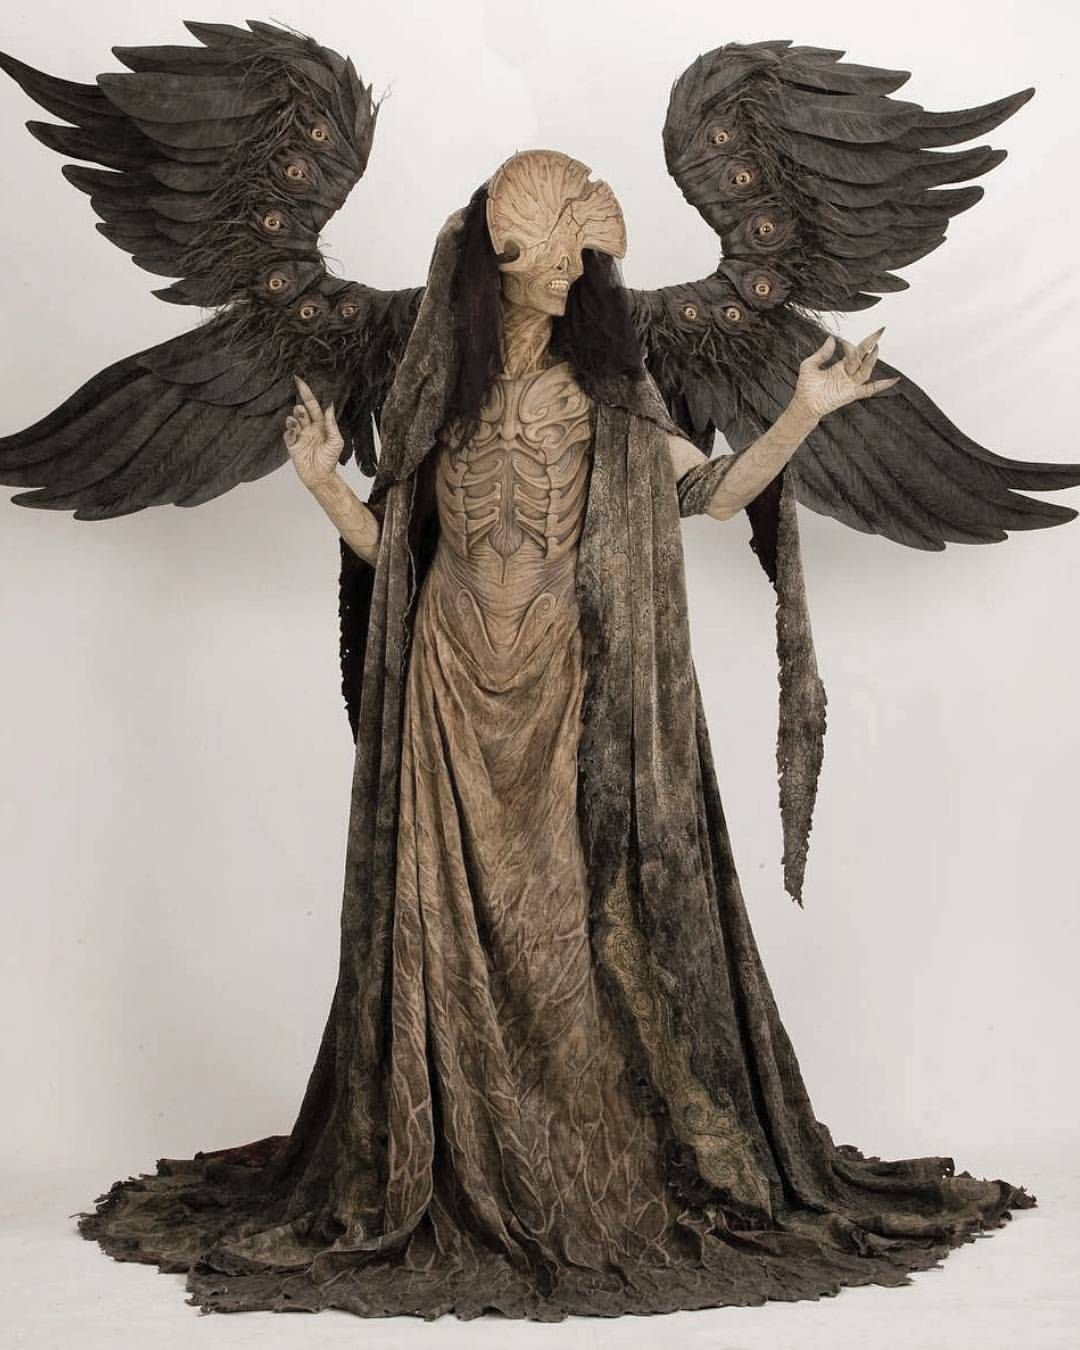 Angel Of Death 2017 april 19 2017 at 05:06pm from betweenmirrors | ink in 2019